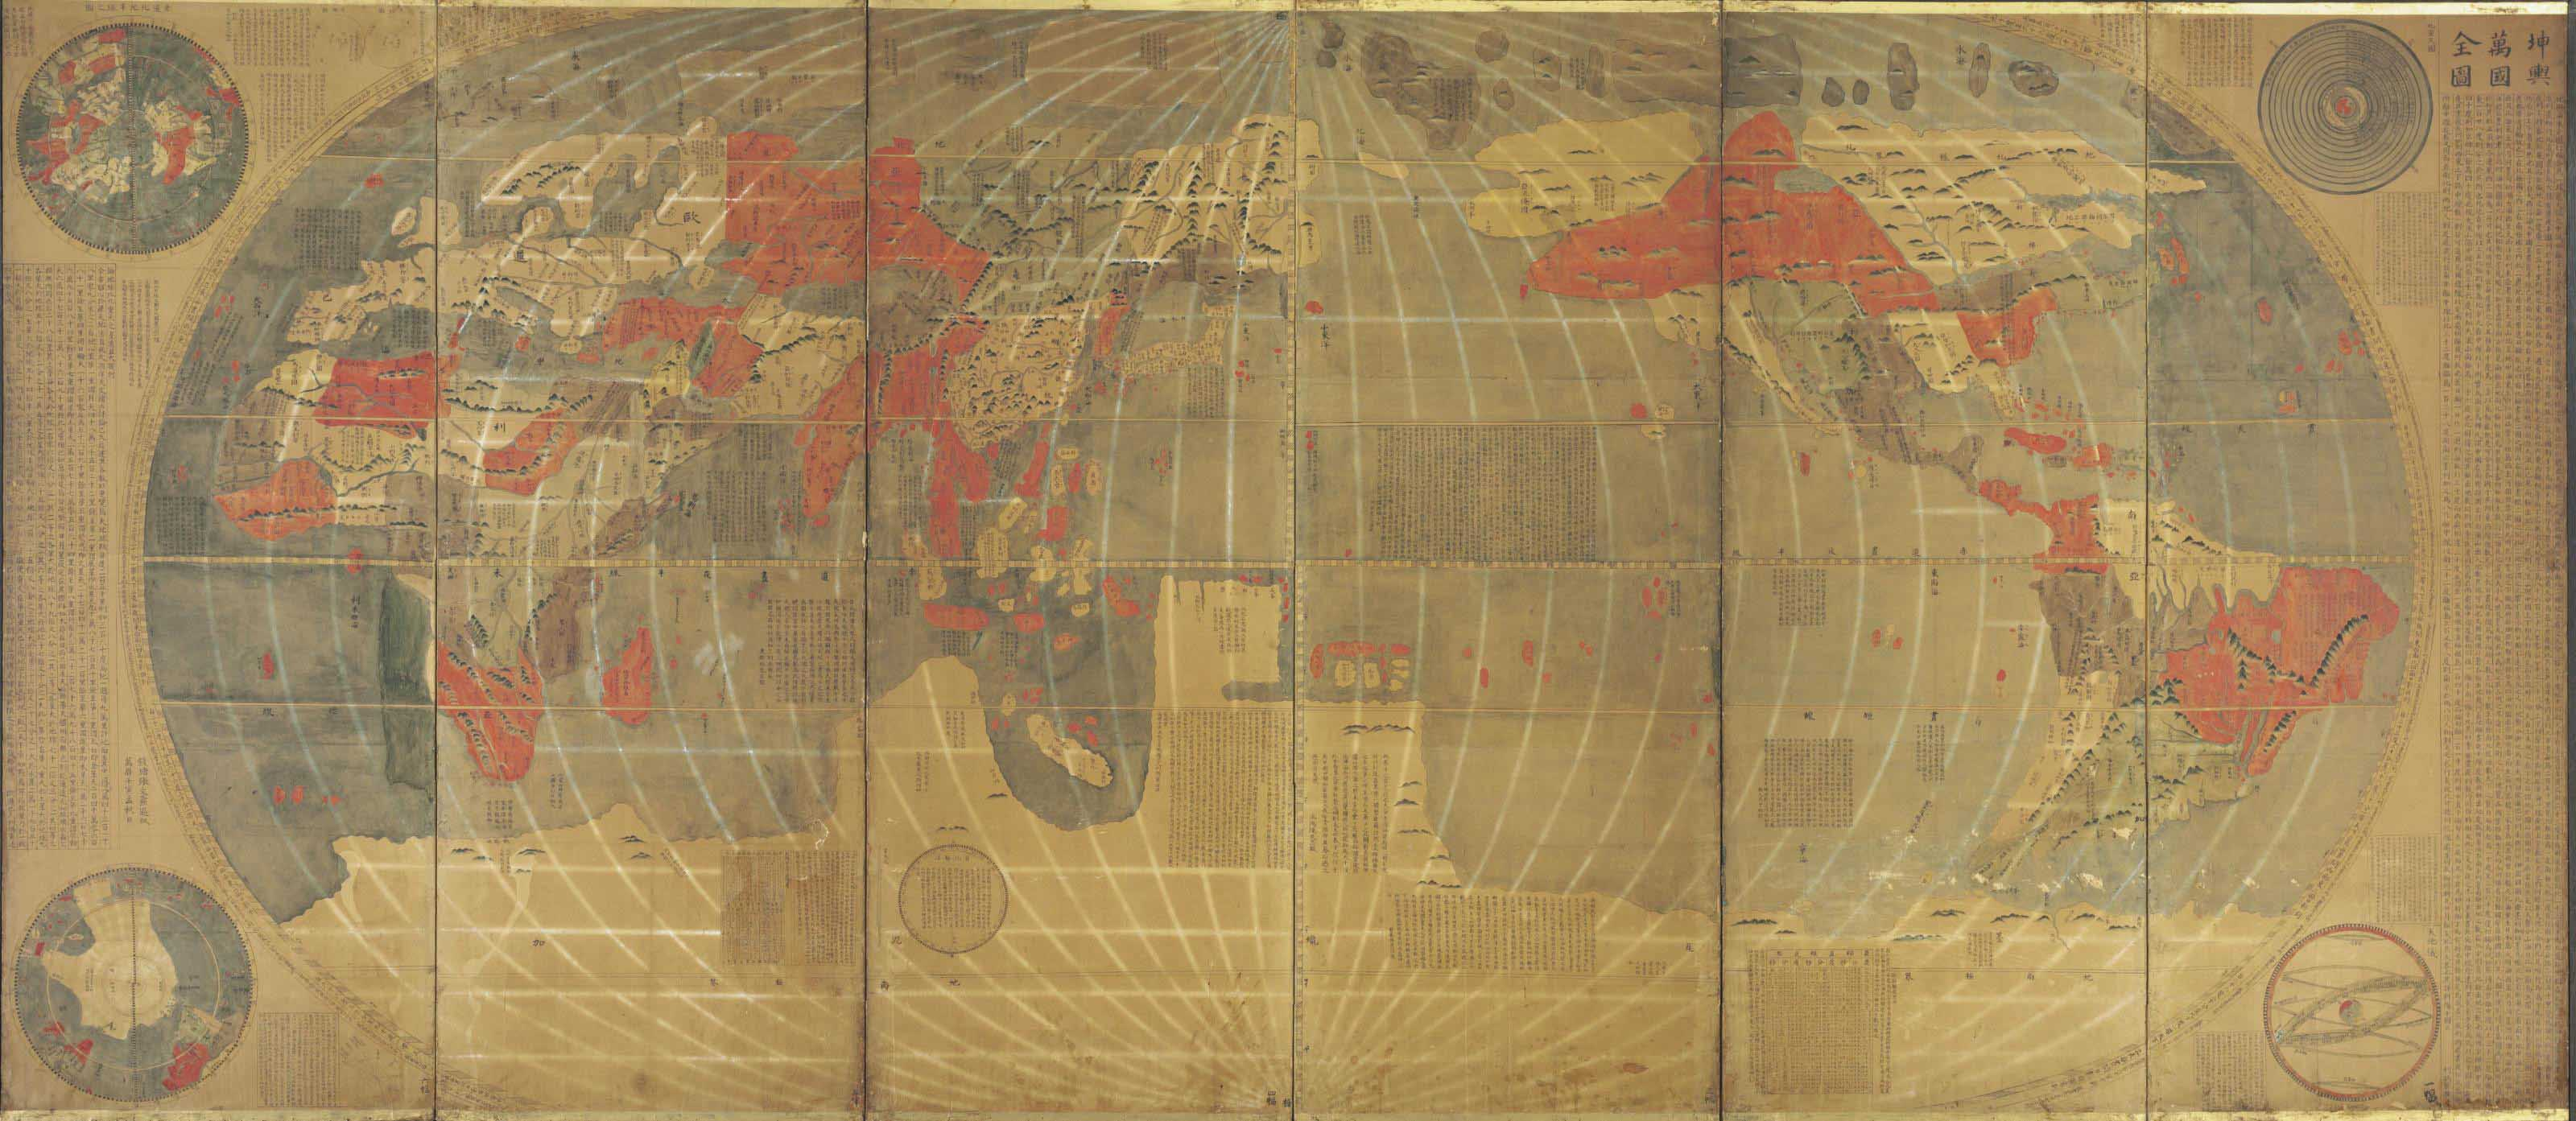 """[RICCI, Mateo (1552-1610). """"Kunyu Wanguo Quantu,"""" [Map of the Ten Thousand Countries of the Earth]. World map, in Chinese, with Japanese Katakana characters. Japan, late 17th/early 18th century.]"""